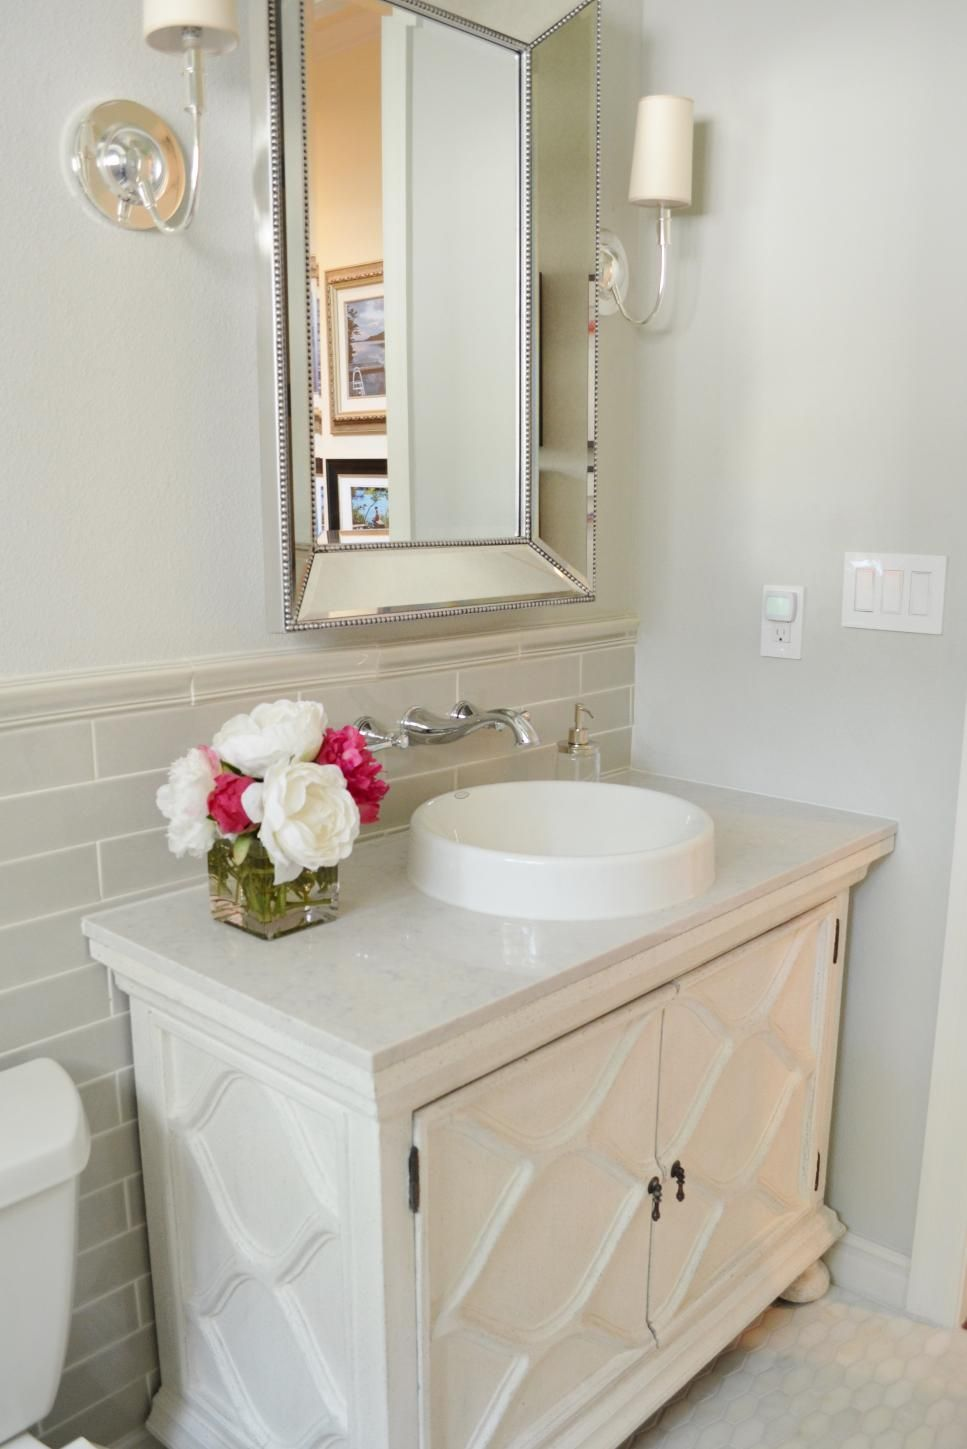 Before And After Bathroom Remodels On A Budget Bathrooms Remodel Budget Bathroom Remodel Bathroom Makeover